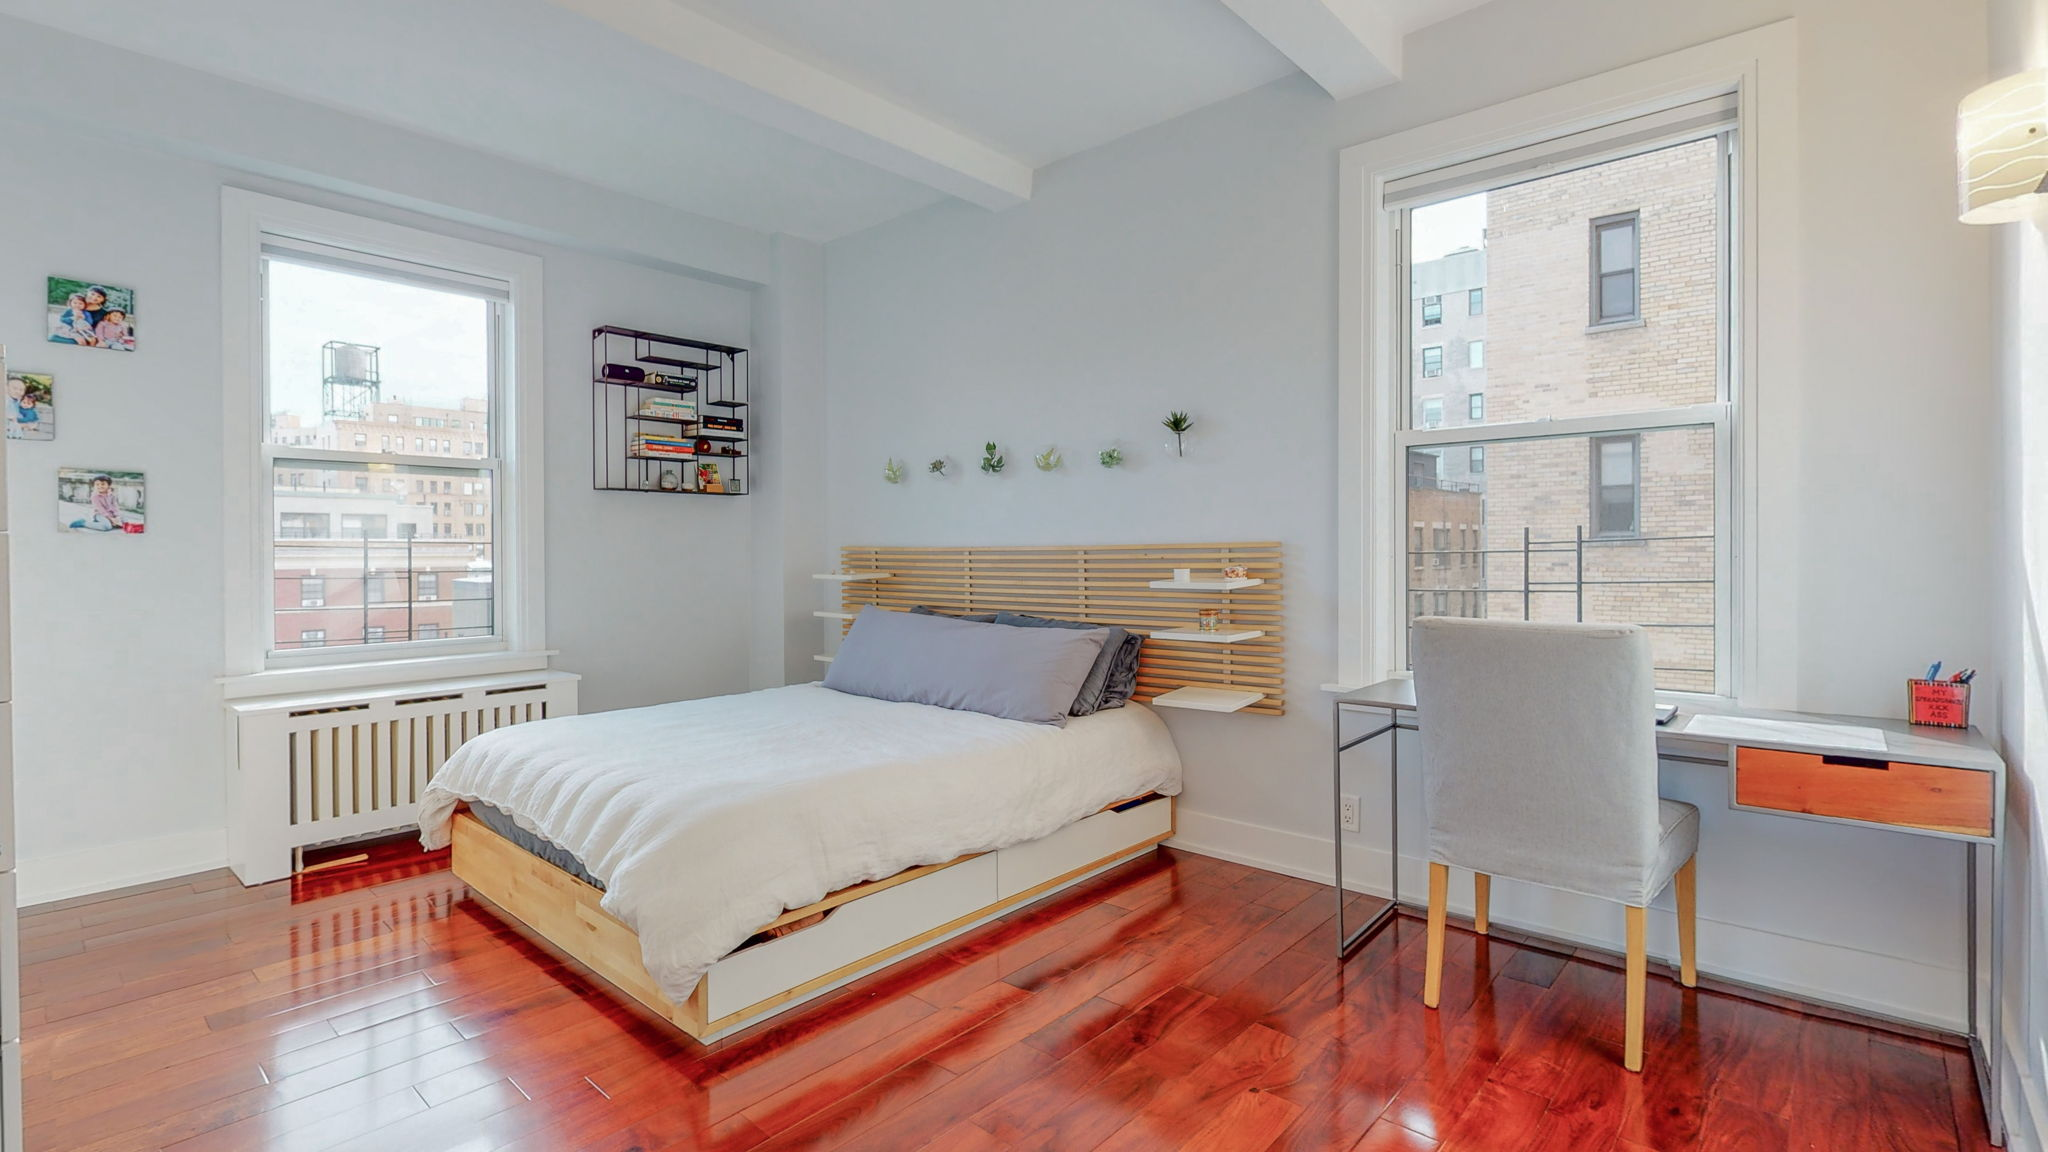 328 West 86th Street, New York, New York, New York, United States 10024, 2 Bedrooms Bedrooms, ,1 BathroomBathrooms,Co-op,FOR SALE,West 86th Street,1138